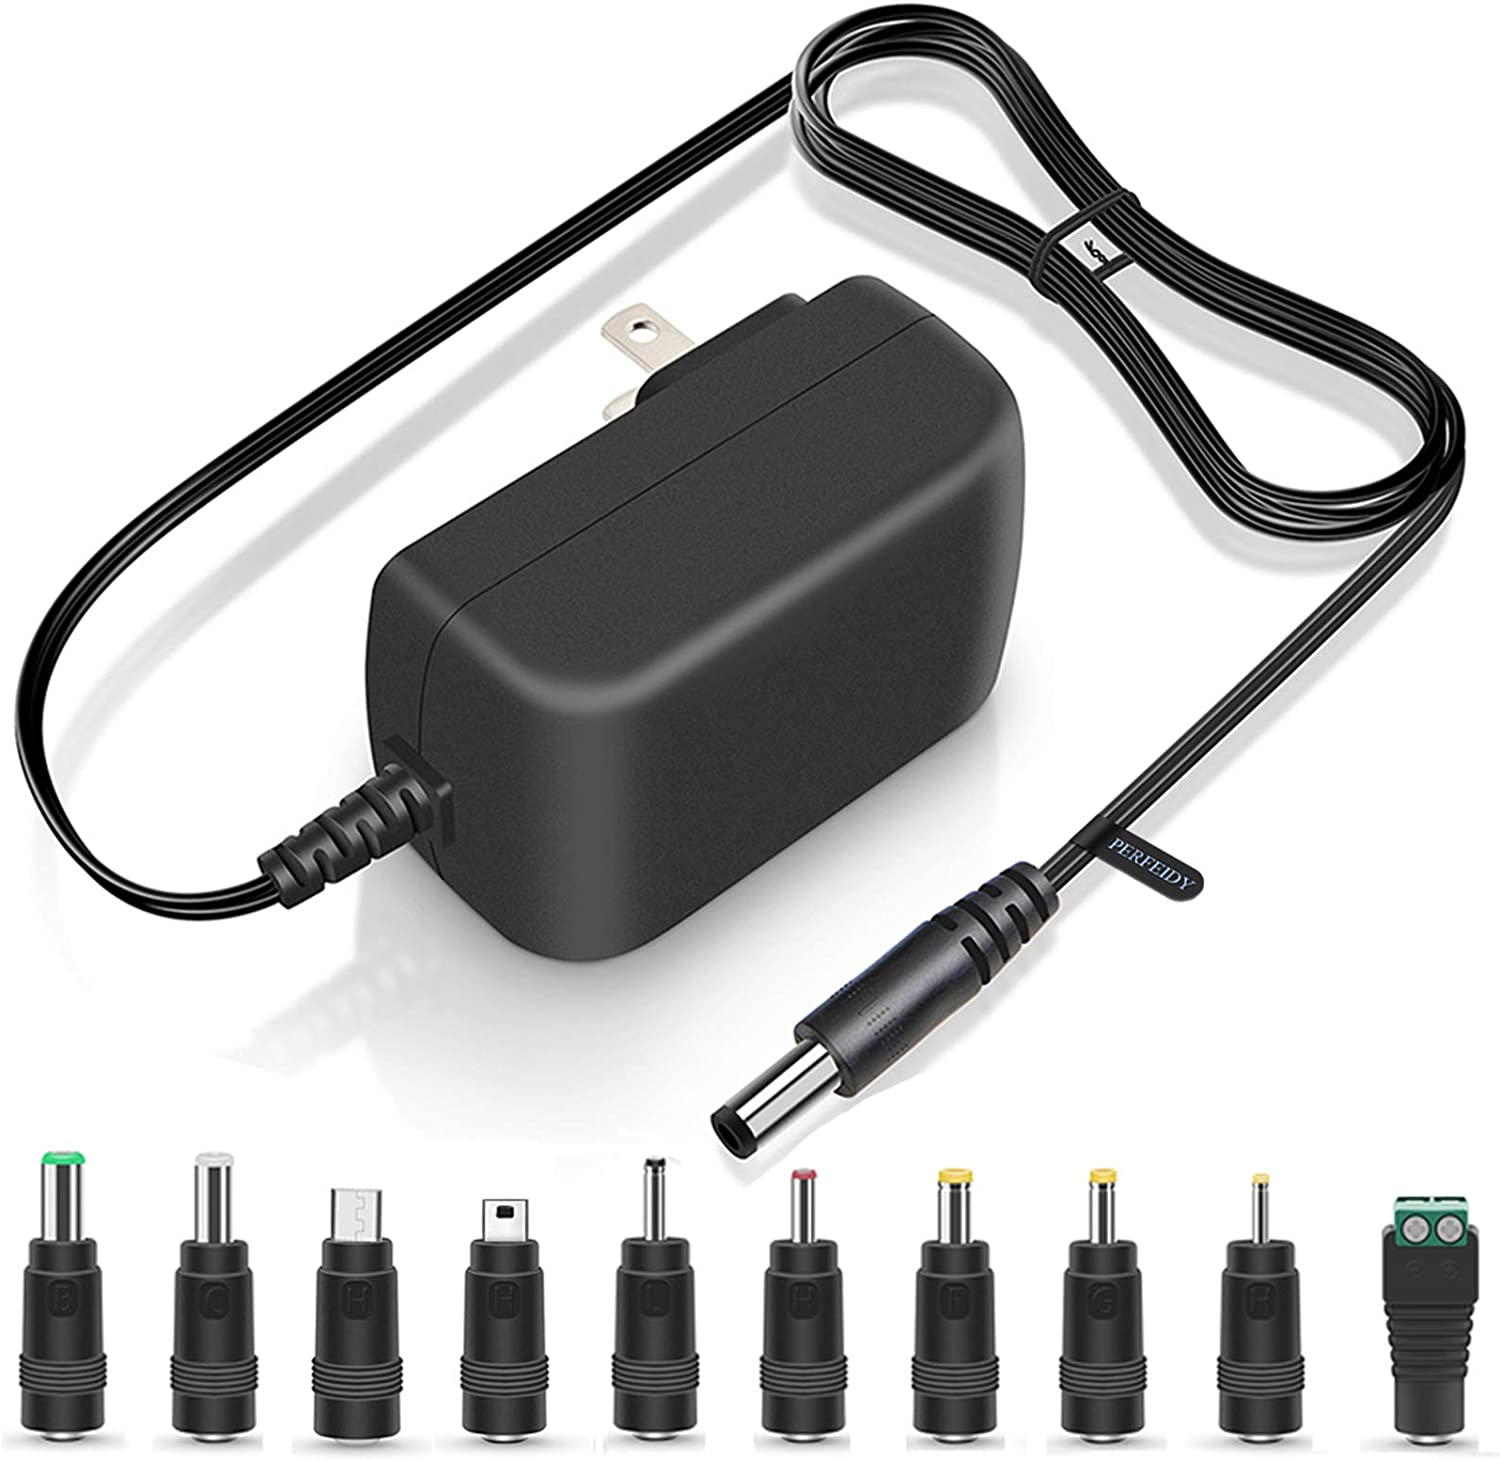 UL Listed 5V 3A 2.5A 15W Universal AC/DC Adapters Power Cord with Multi Tips Replacement Wall Plug Switching Power Supply Regulated Charger for LED Pixel Light Camera Speaker HUB Recorder Transformer